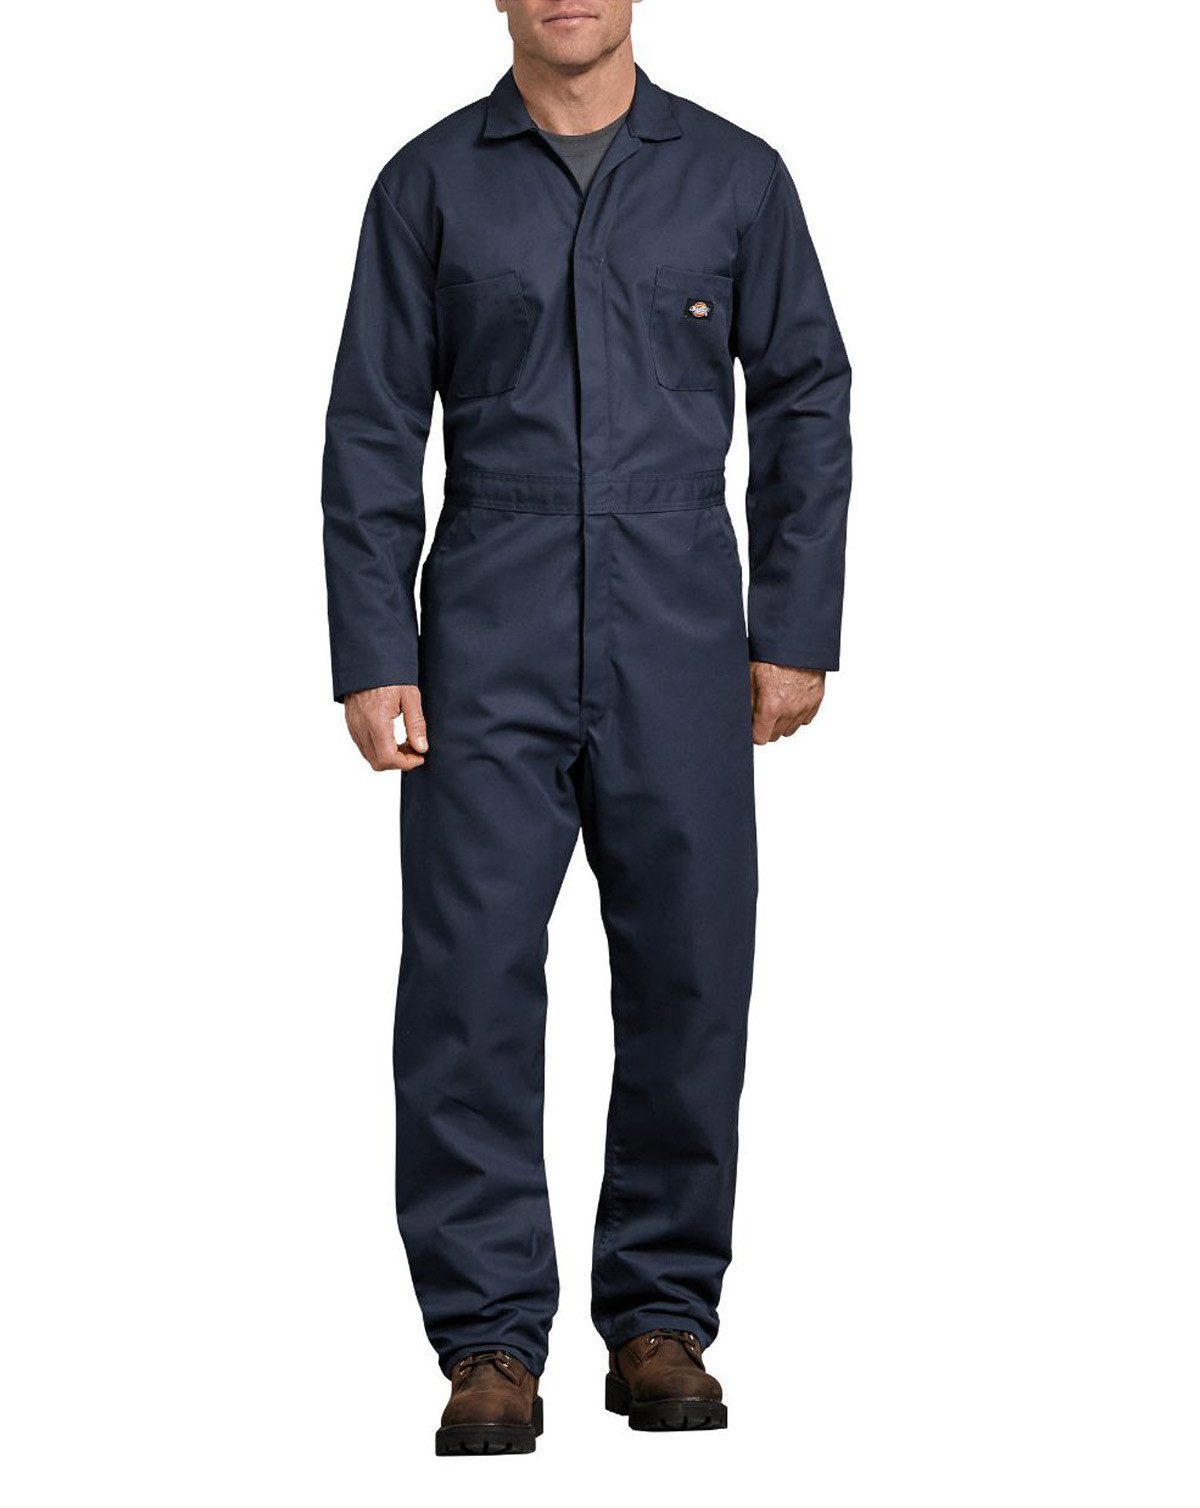 Dickies Blended Coverall (Dark Navy, XL)